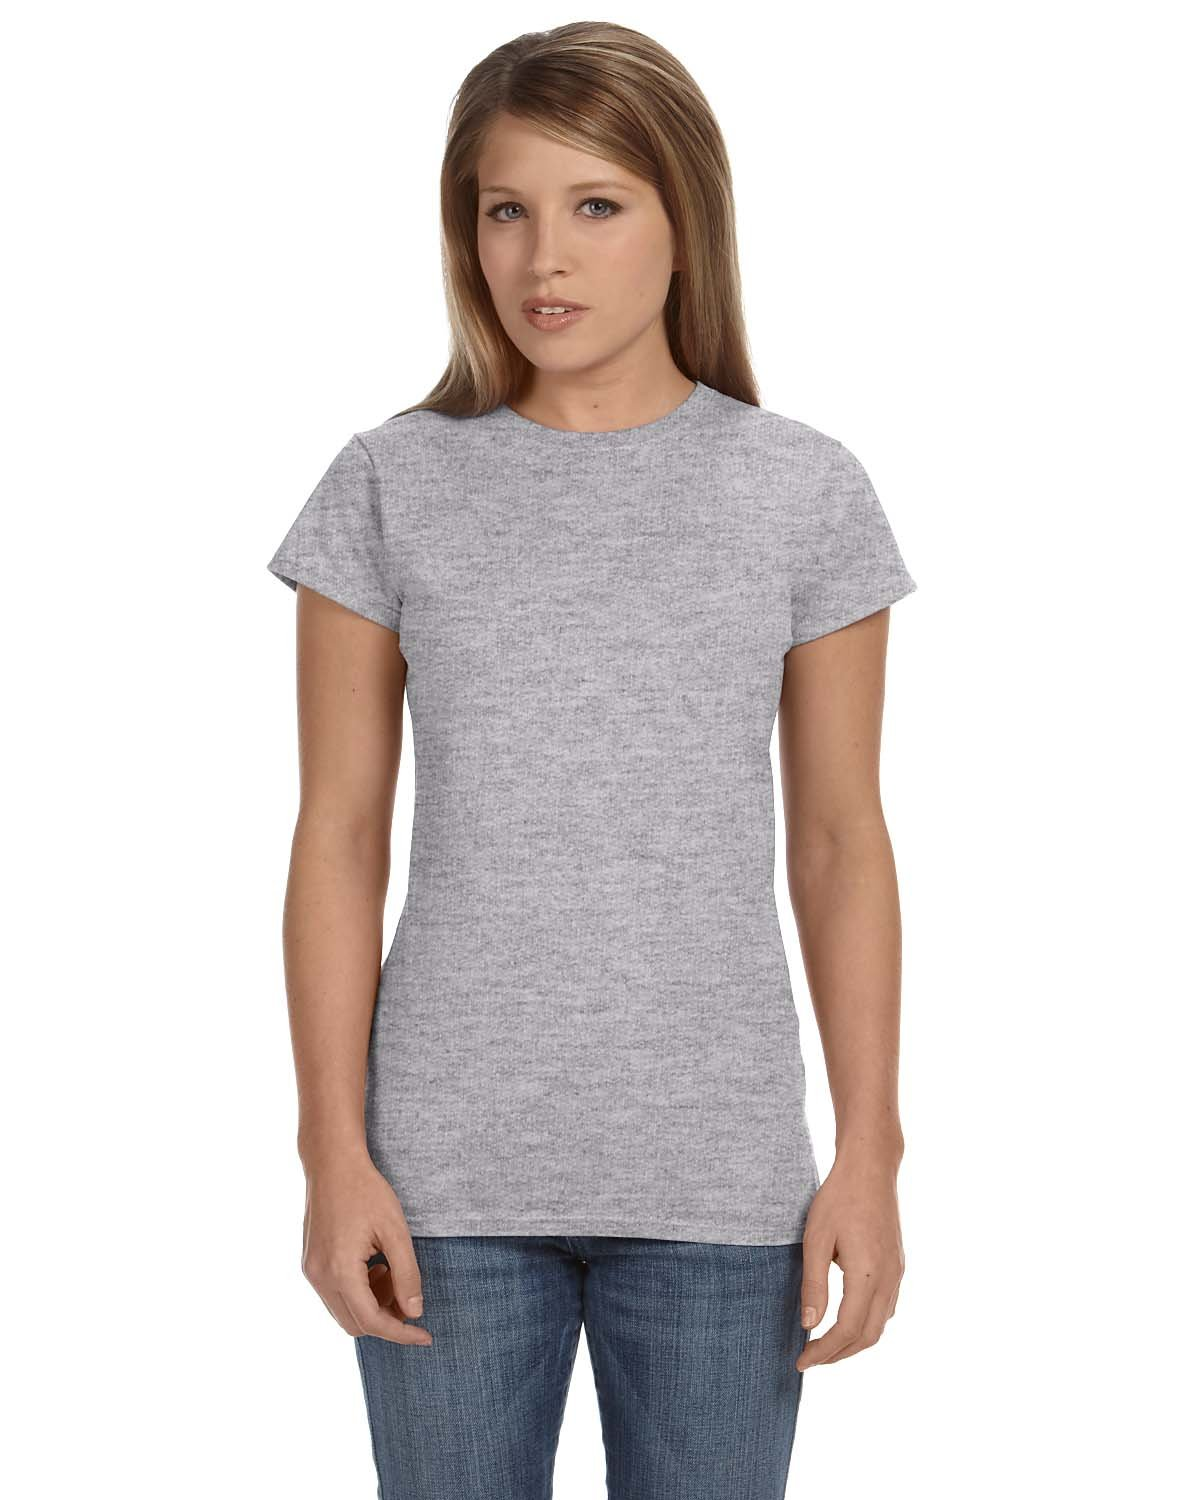 Gildan Ladies' Softstyle® 4.5 oz Fitted T-Shirt RS SPORT GREY